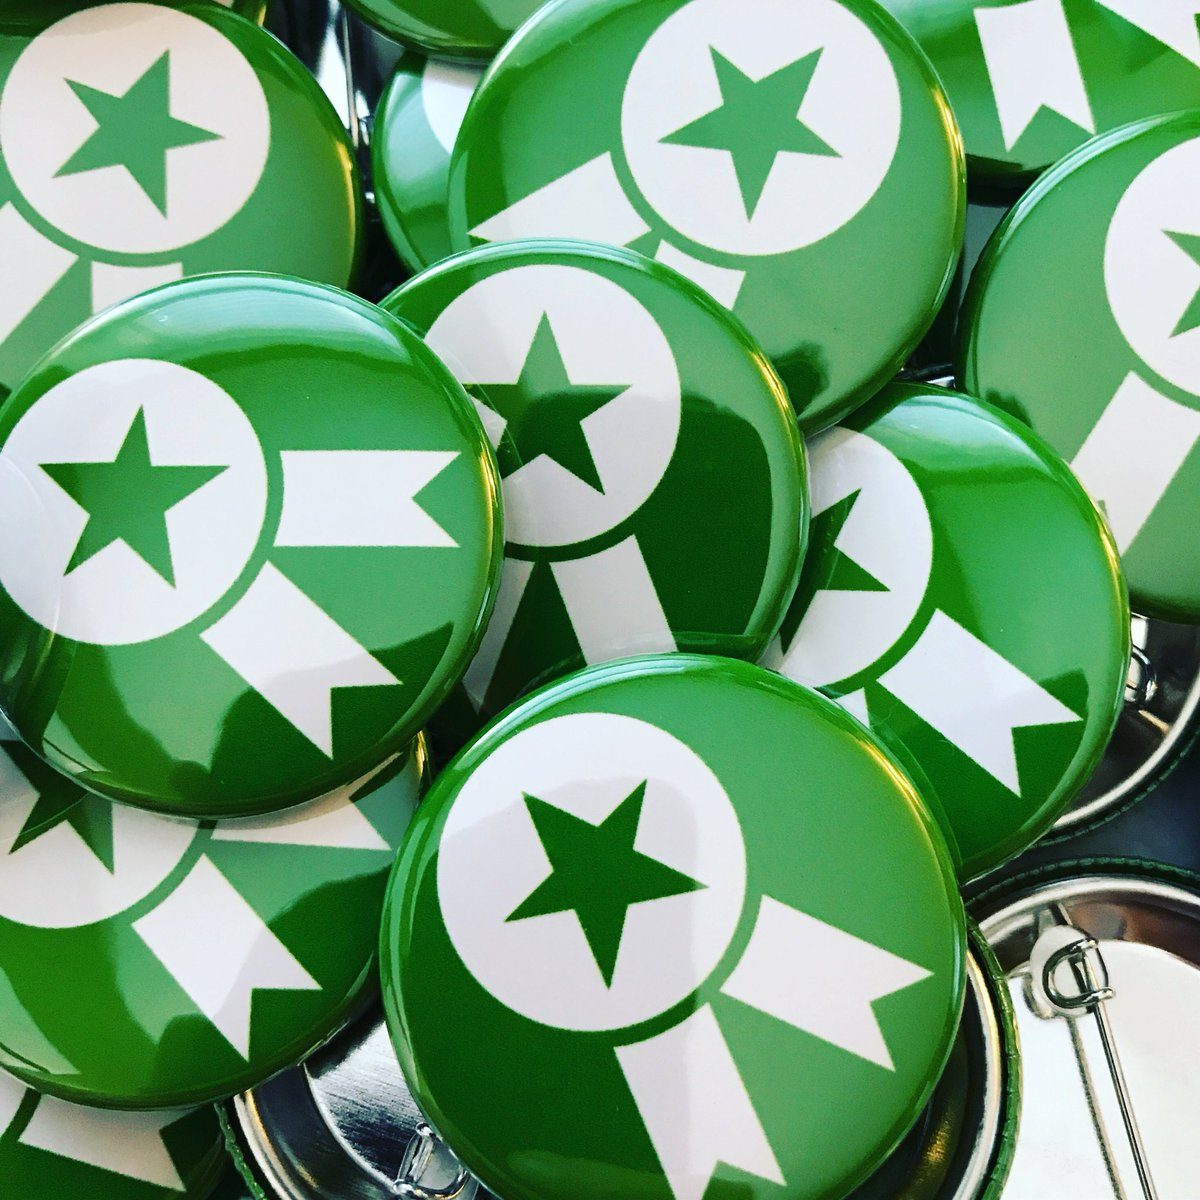 Put anything on a button! Visit  http://www. buttonplanet.com  &nbsp;   to get started!! #green #ribbon #star #starribbon #anythingyouwant #getstartednow<br>http://pic.twitter.com/Ax5sgiWUot